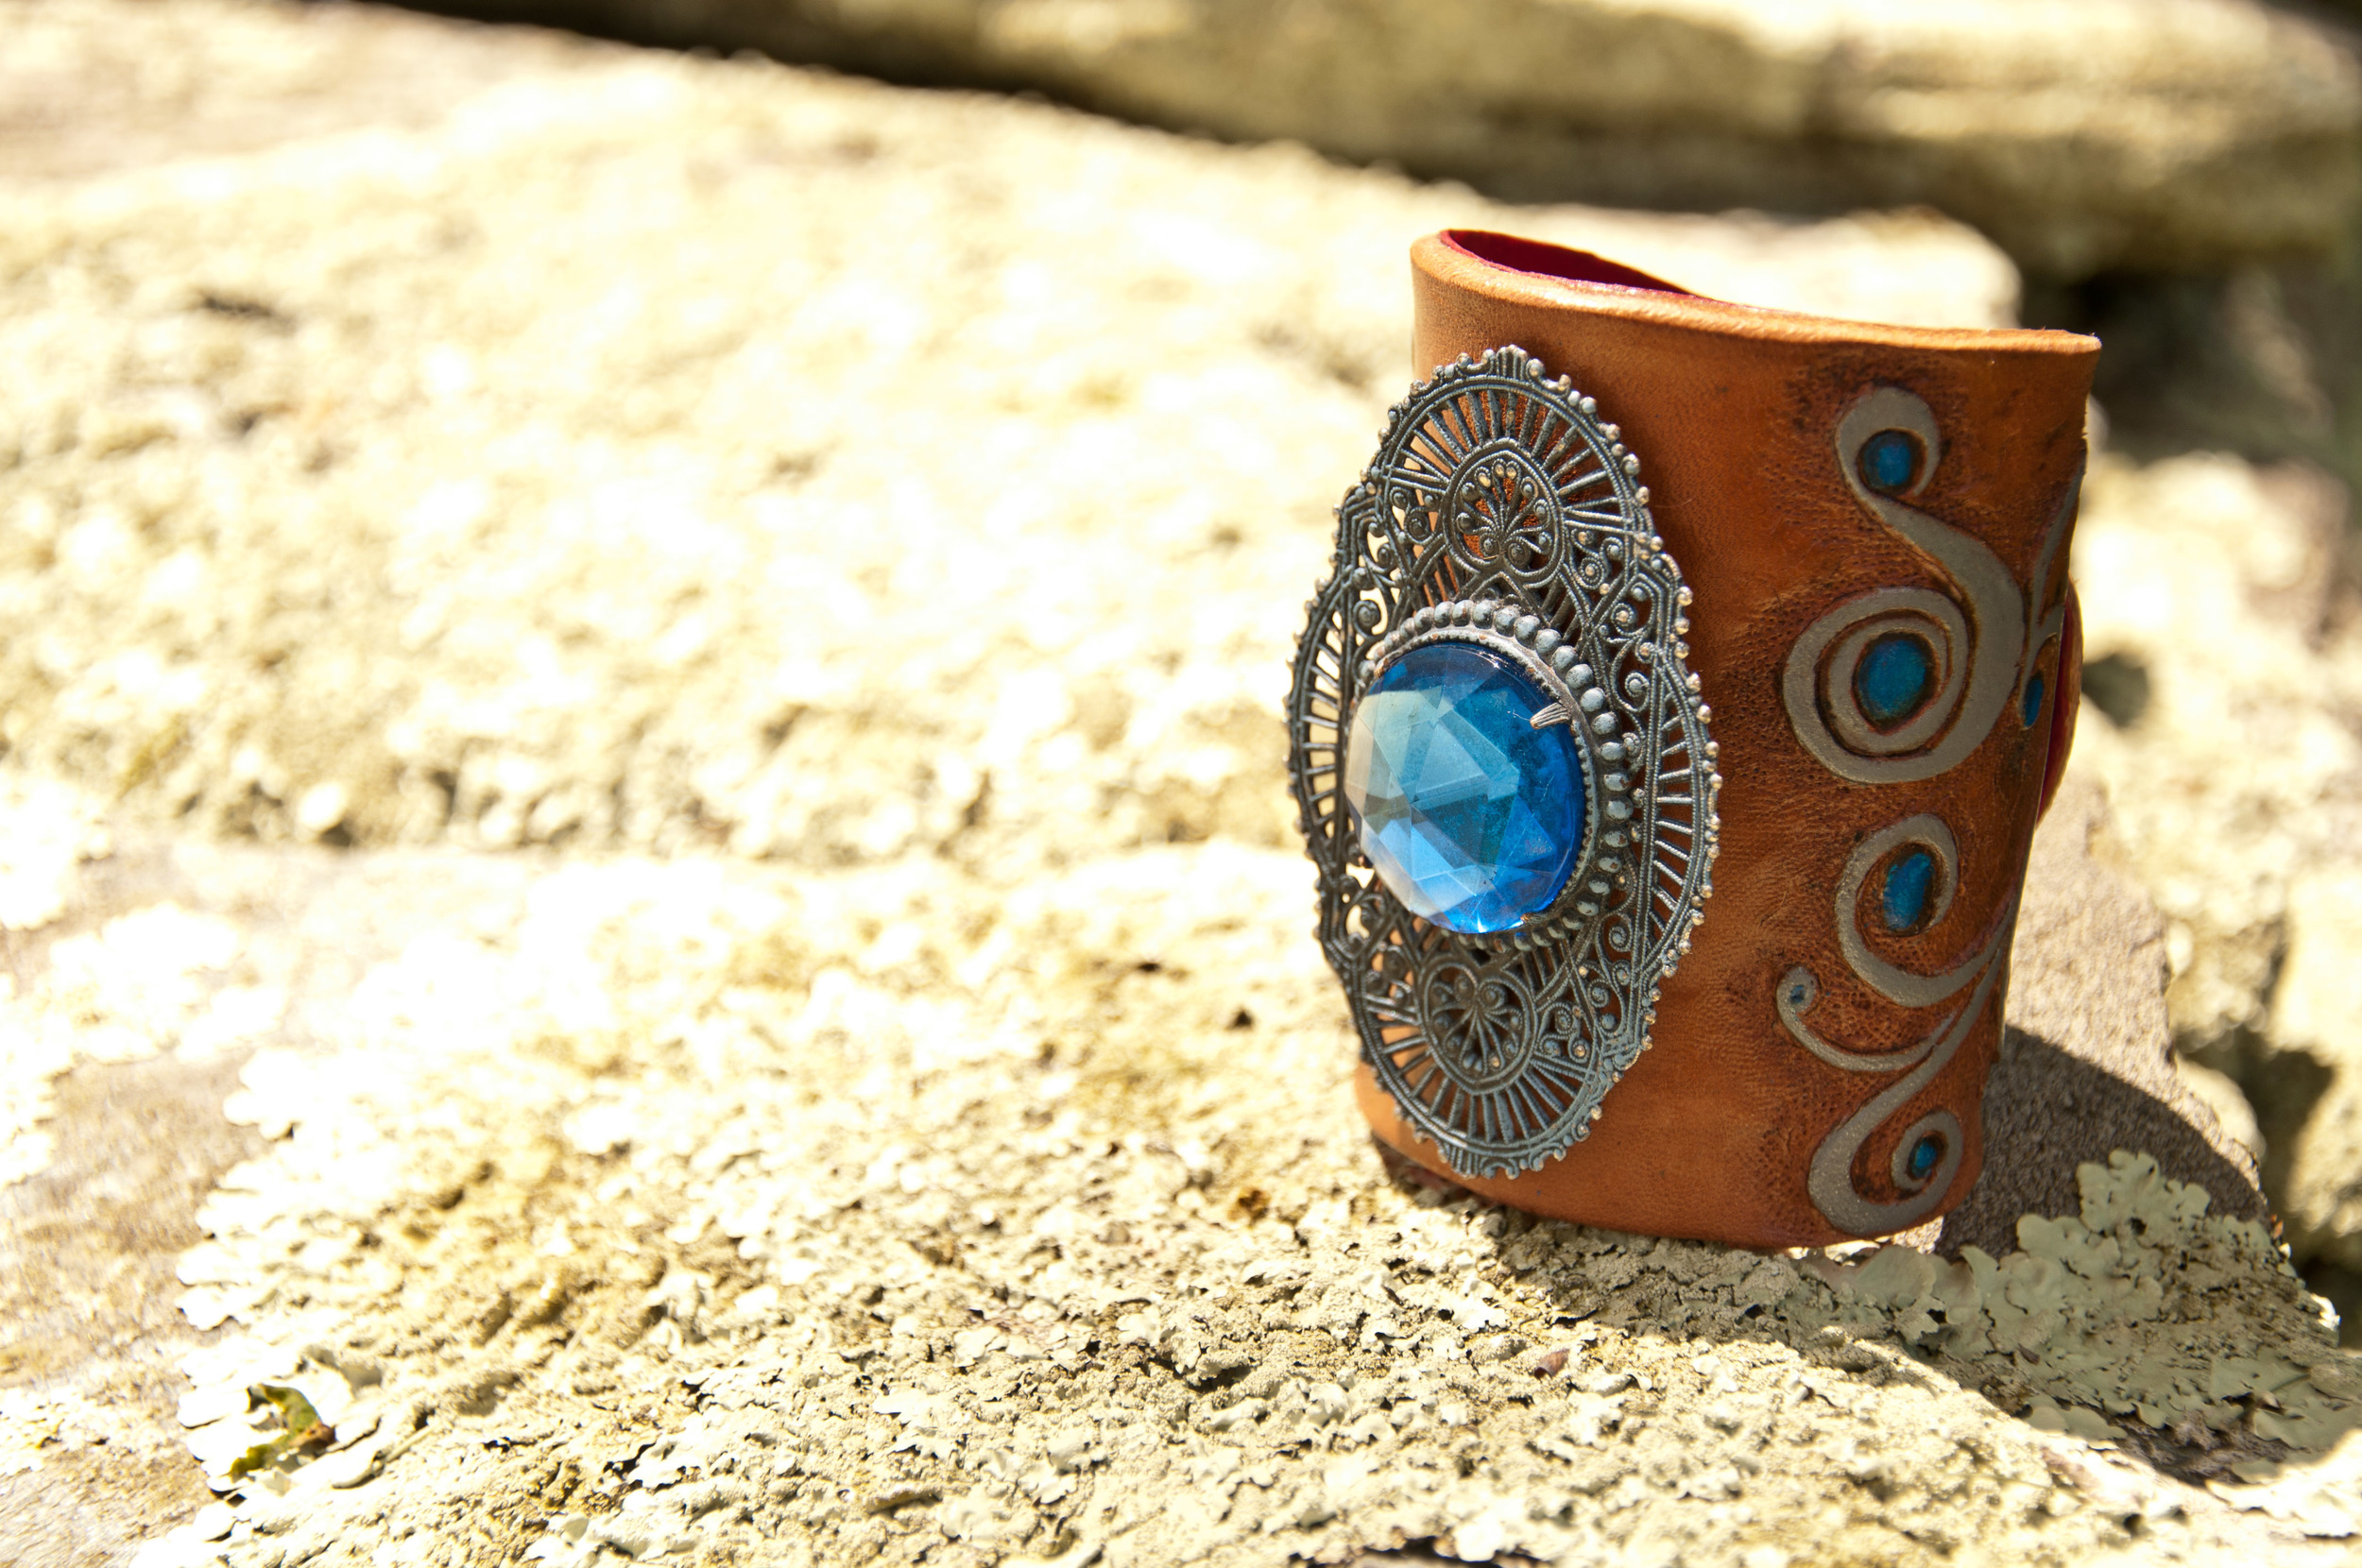 18th century cut glass estate leather cuff